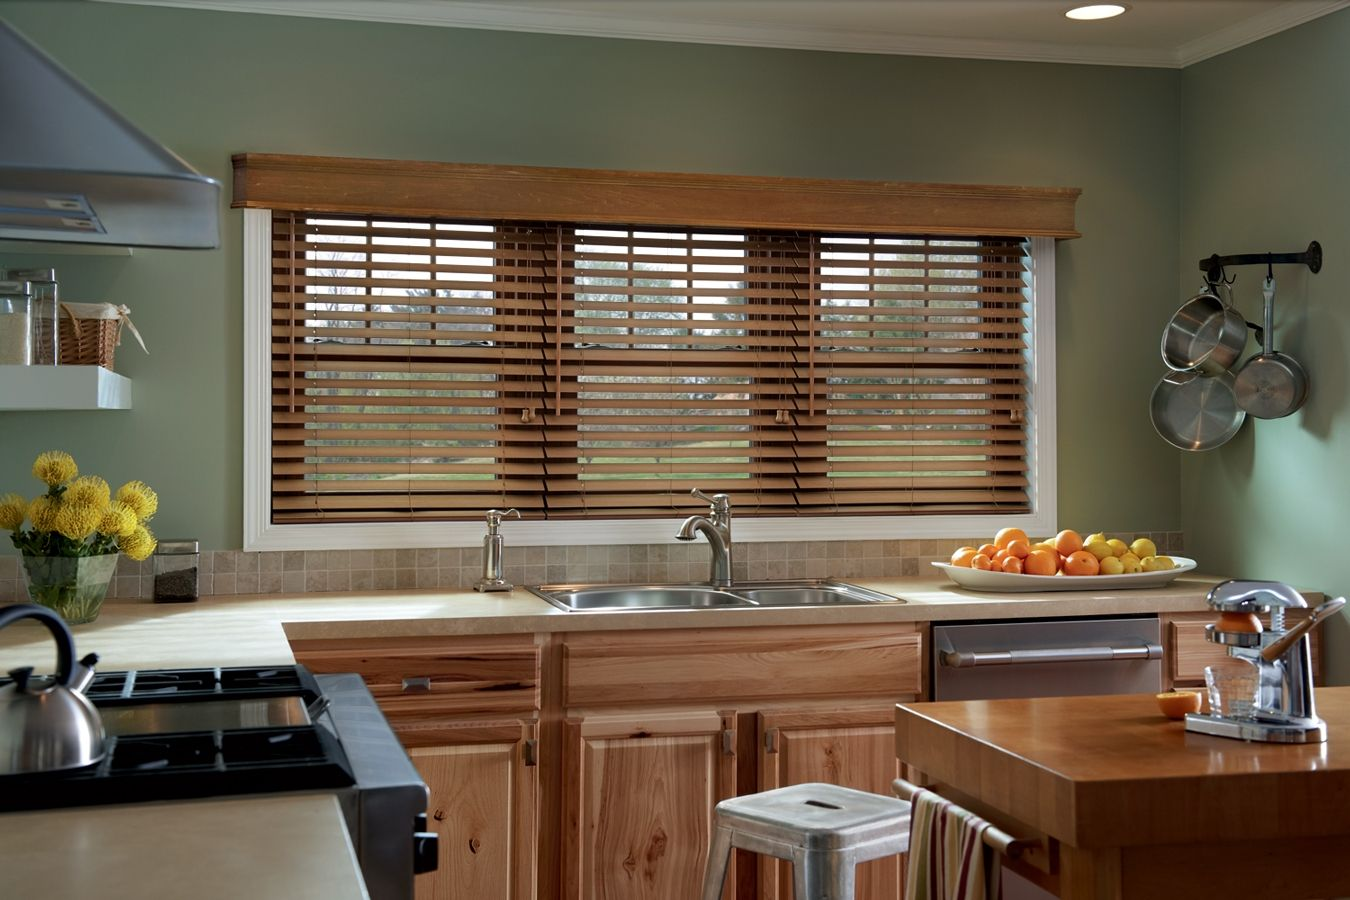 Kitchen window treatments  small kitchen window blinds  navigatorspbfo  pinterest